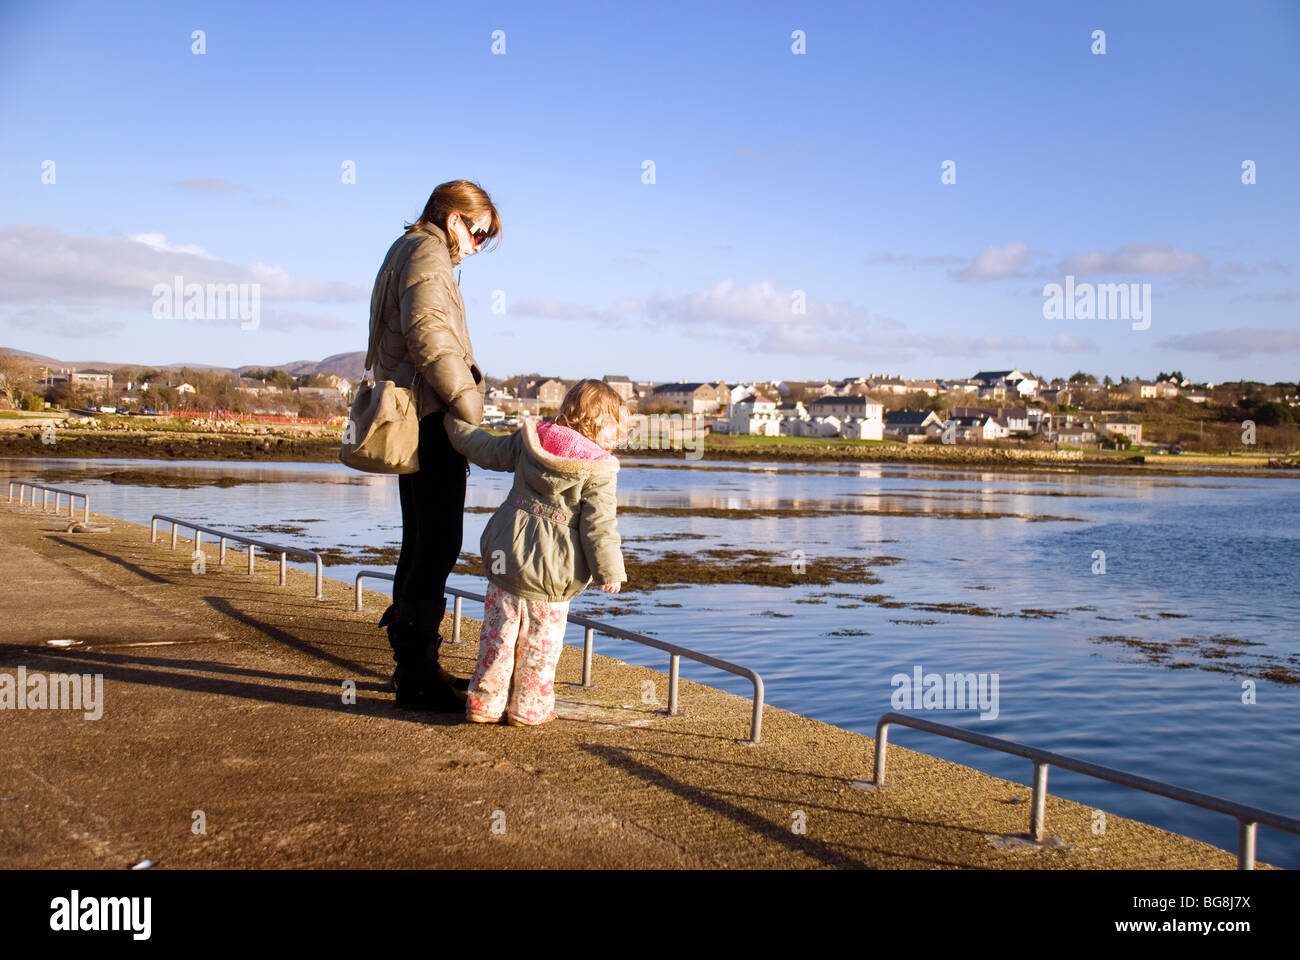 Single mother and child out for a walk - Stock Image